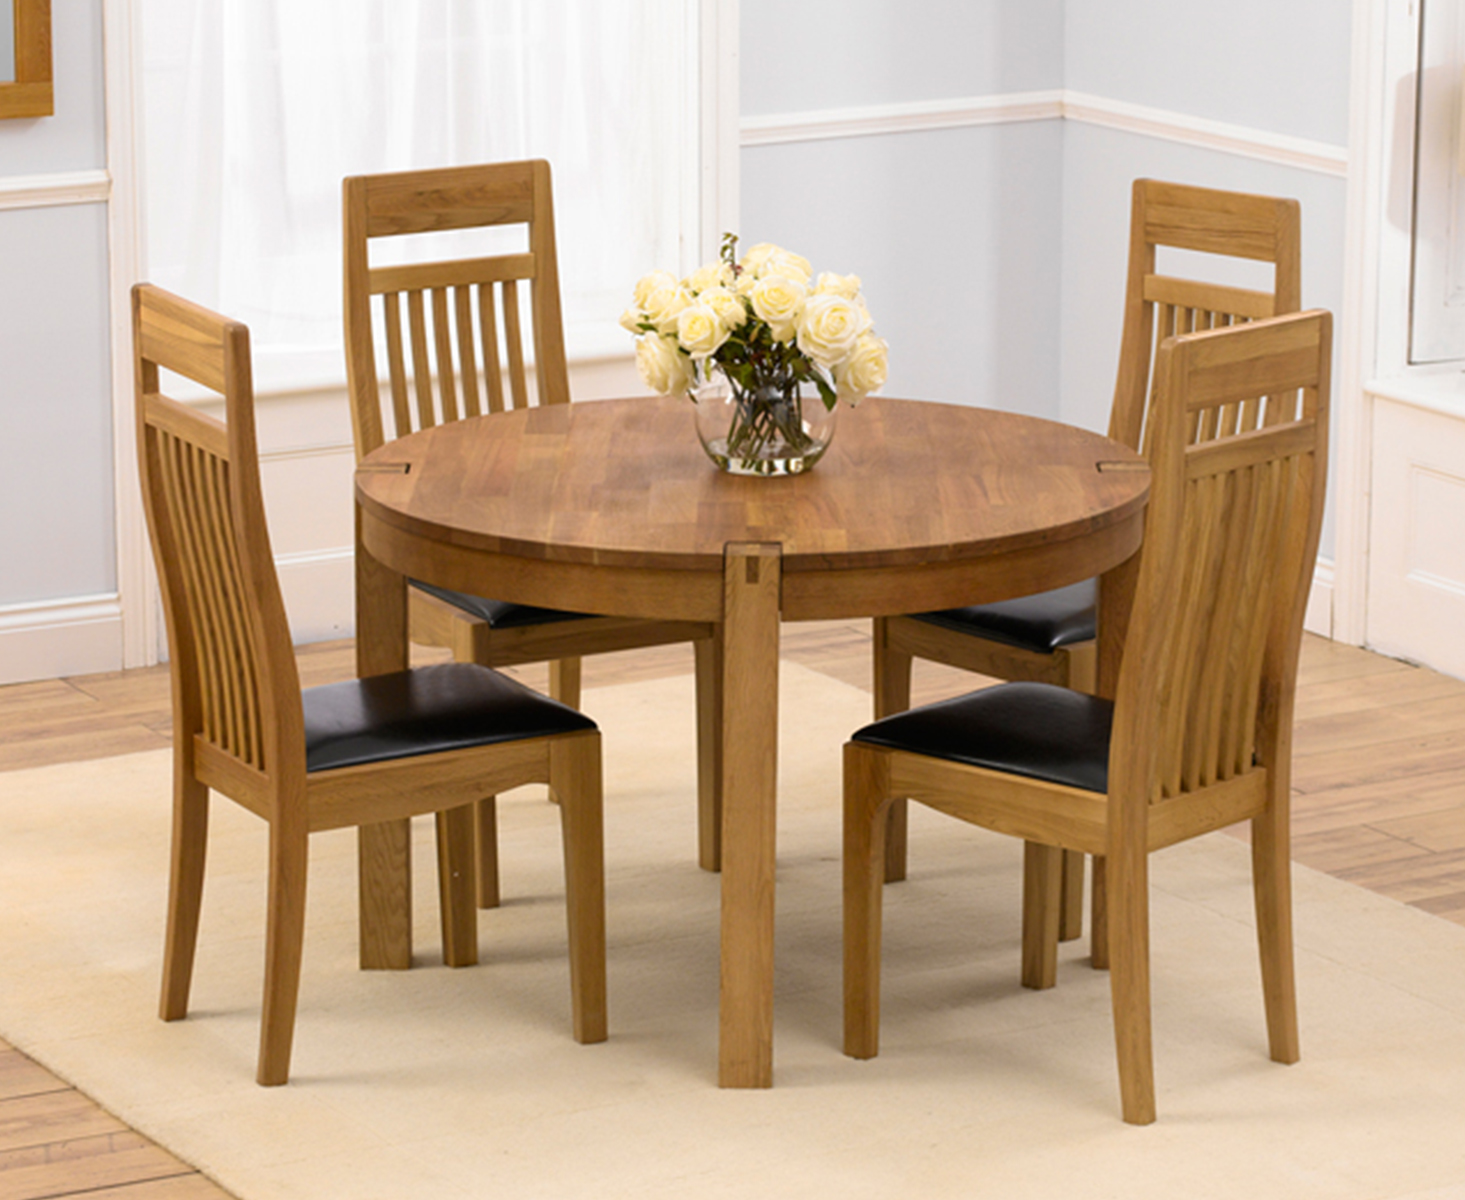 Verona Round Dining Table with 4